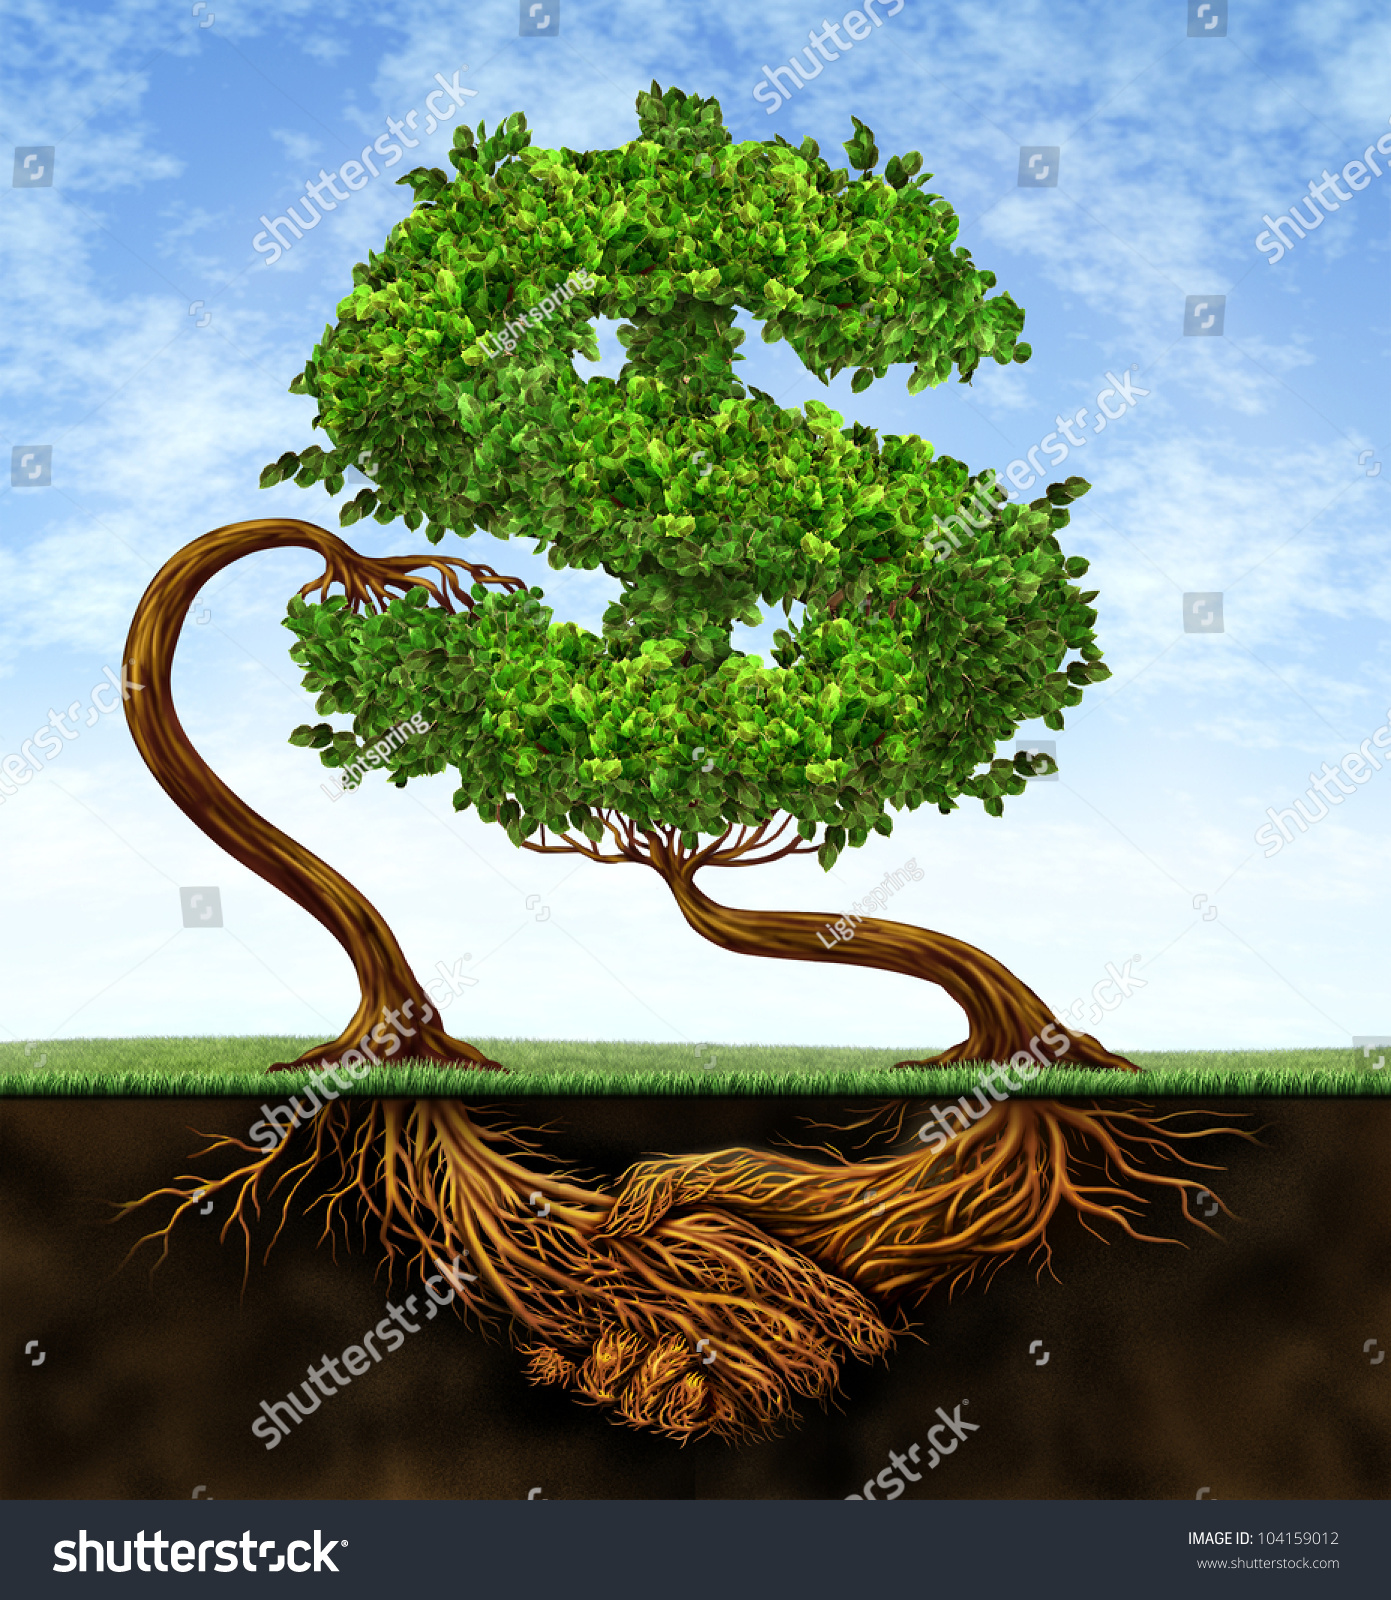 Finance Tree: Financial Growth Agreement With Two Trees In The Shape Of